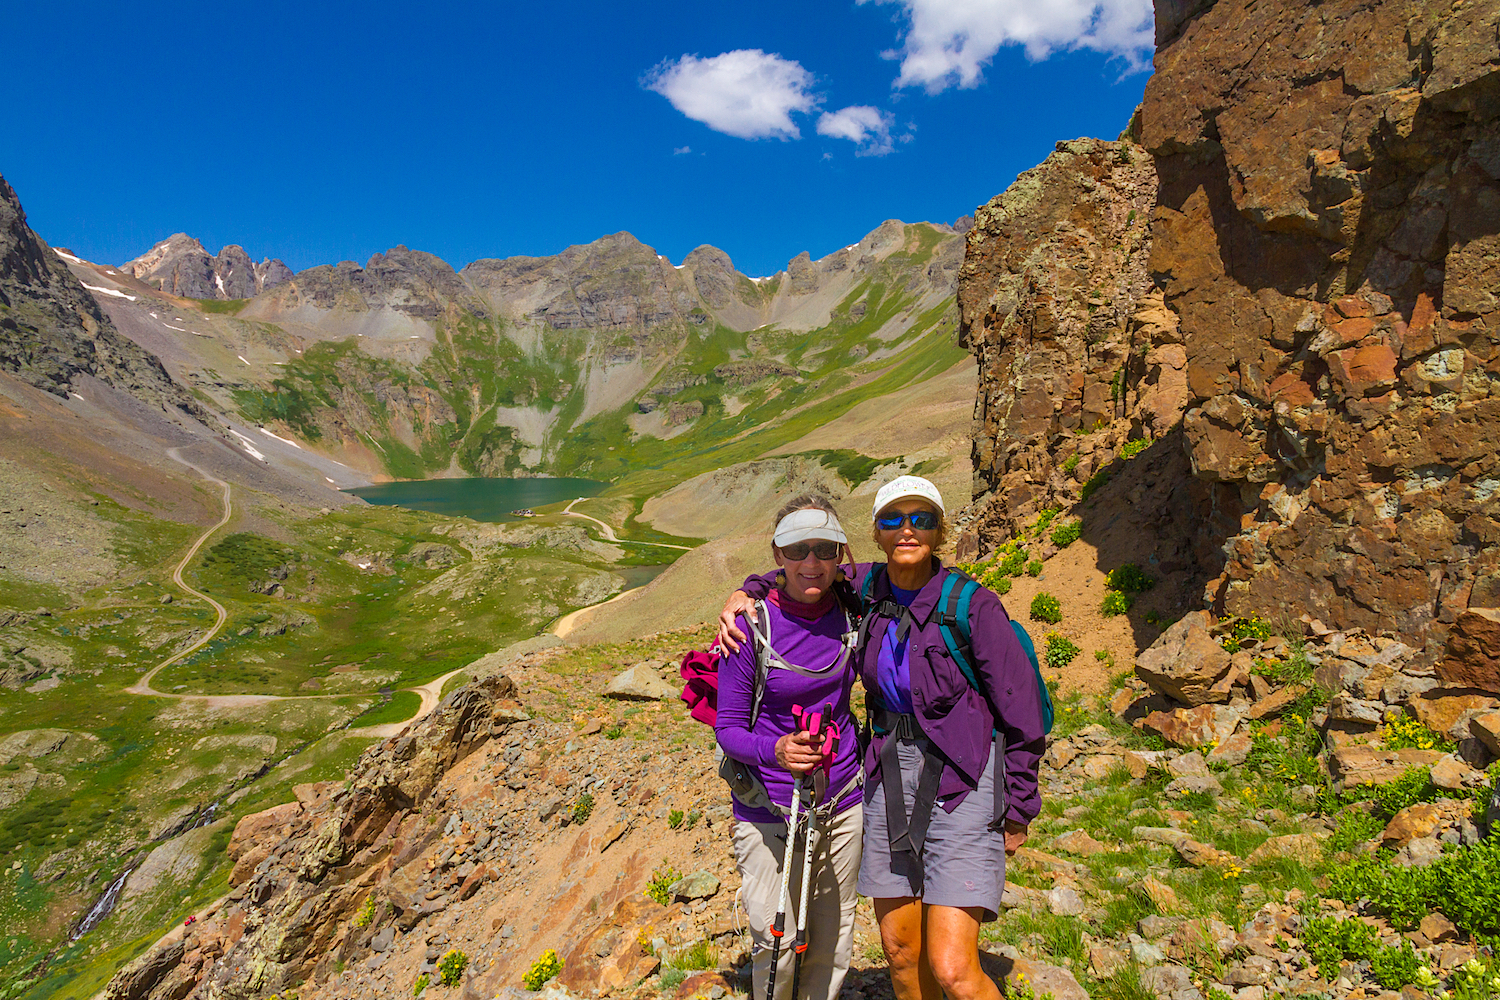 Jane Marie and Michelle on Clear Lake Trail, Image # 4058